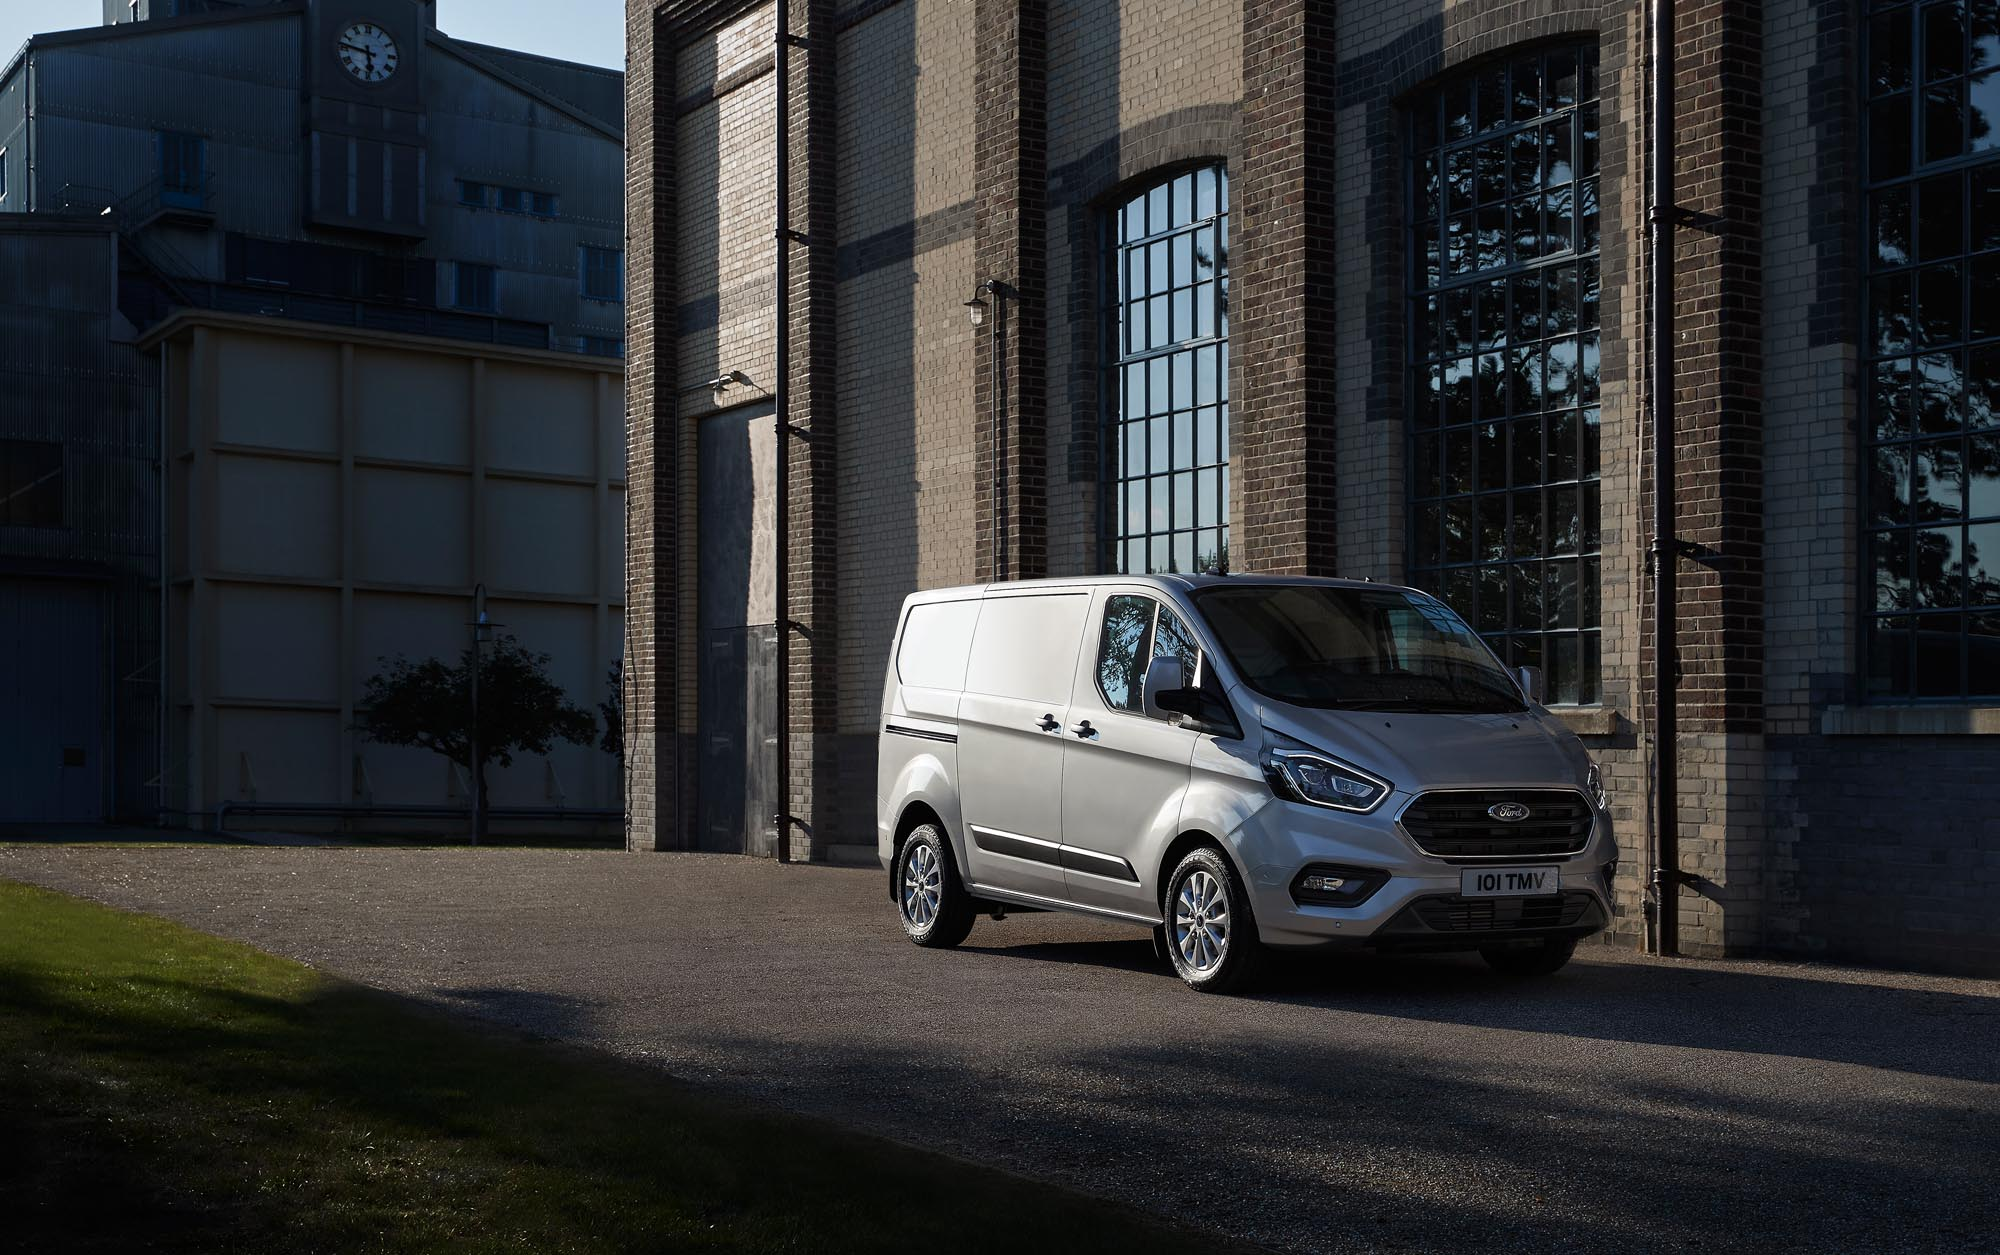 Ford Transit Van - Photography Production by Luke Jackson